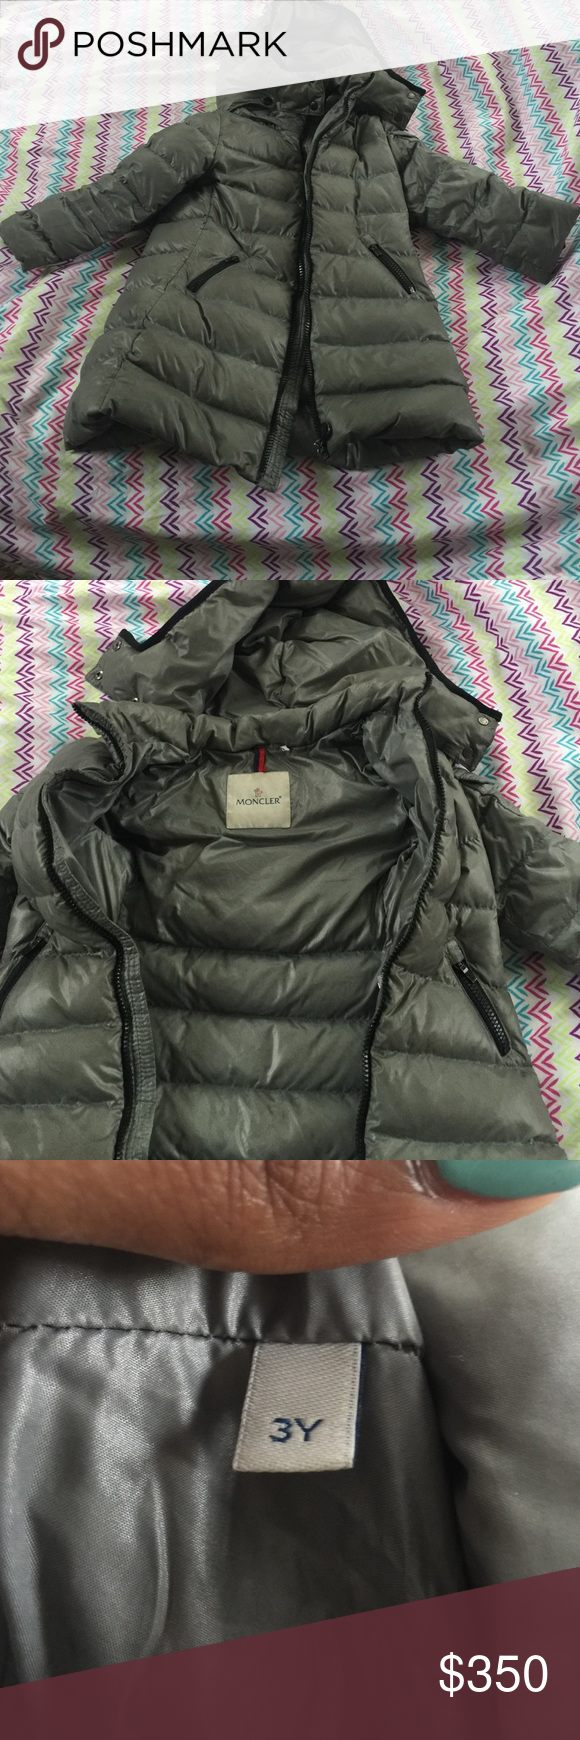 202d432eb Moncler kids winter coat Grey its too small for my daughter so Im selling  it I also have a moncler hat in a xs for kids Moncler Jackets Coats Puffers